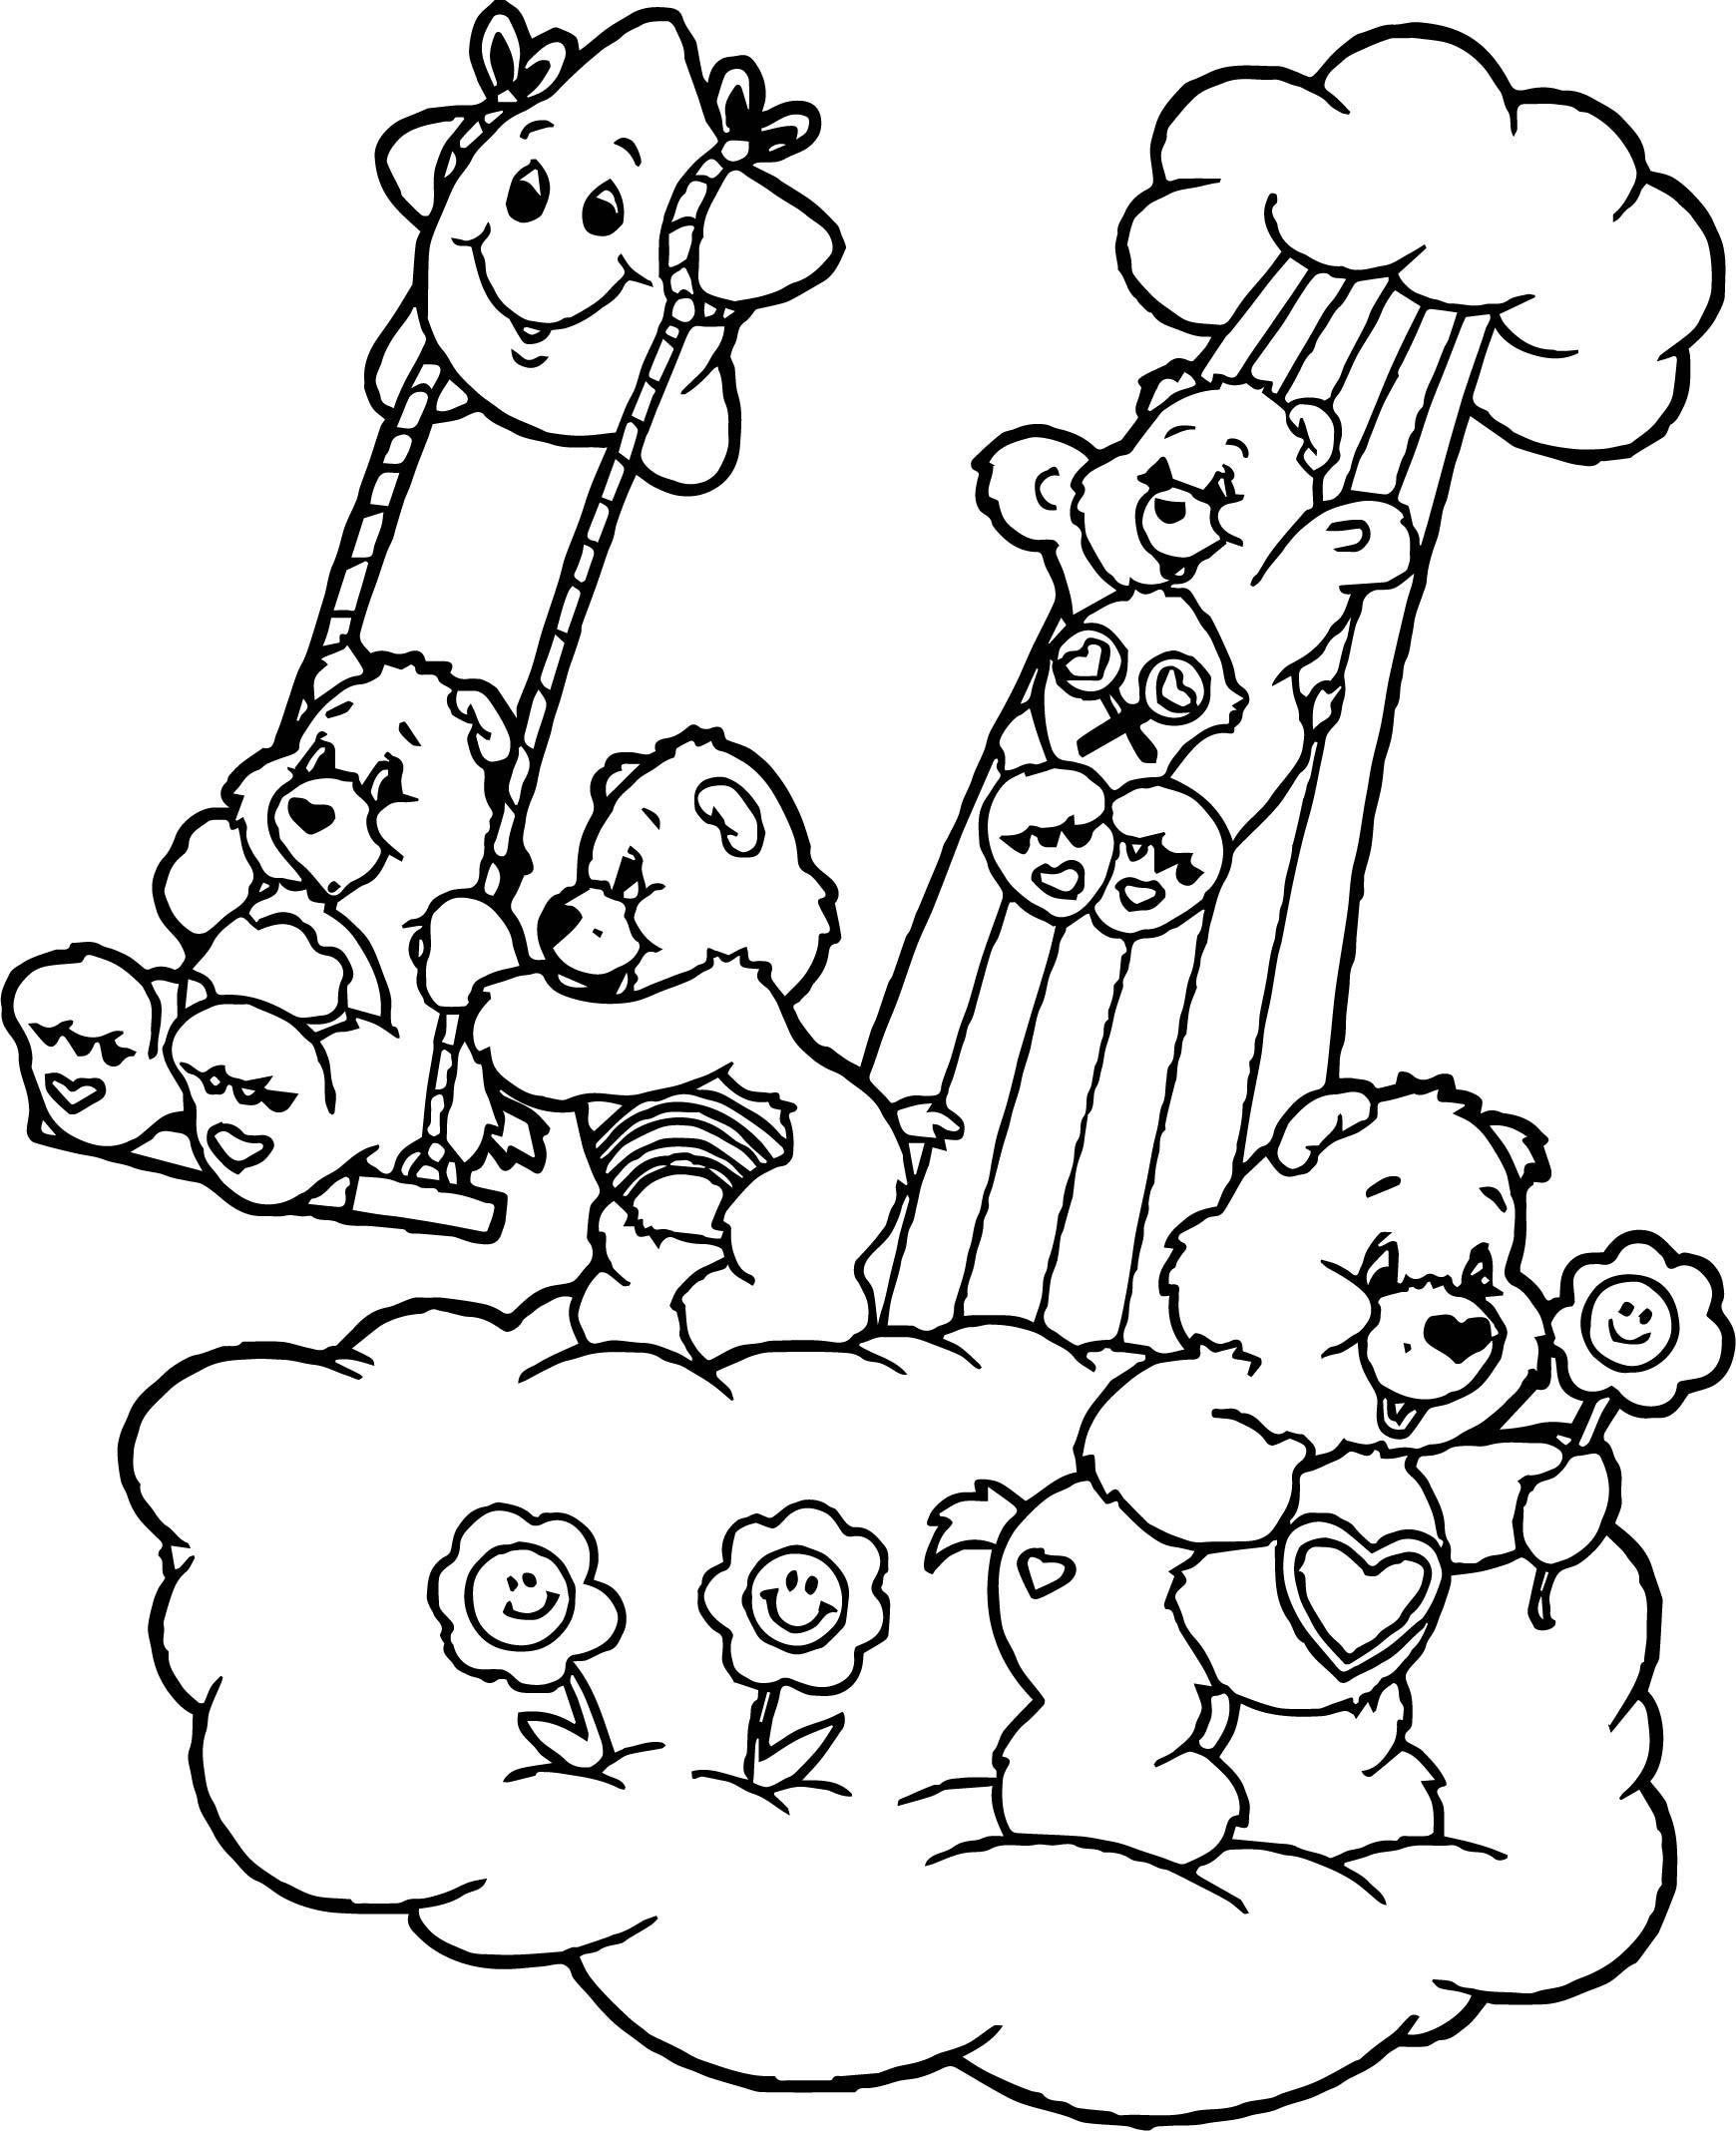 Care Bears Friends Coloring Page